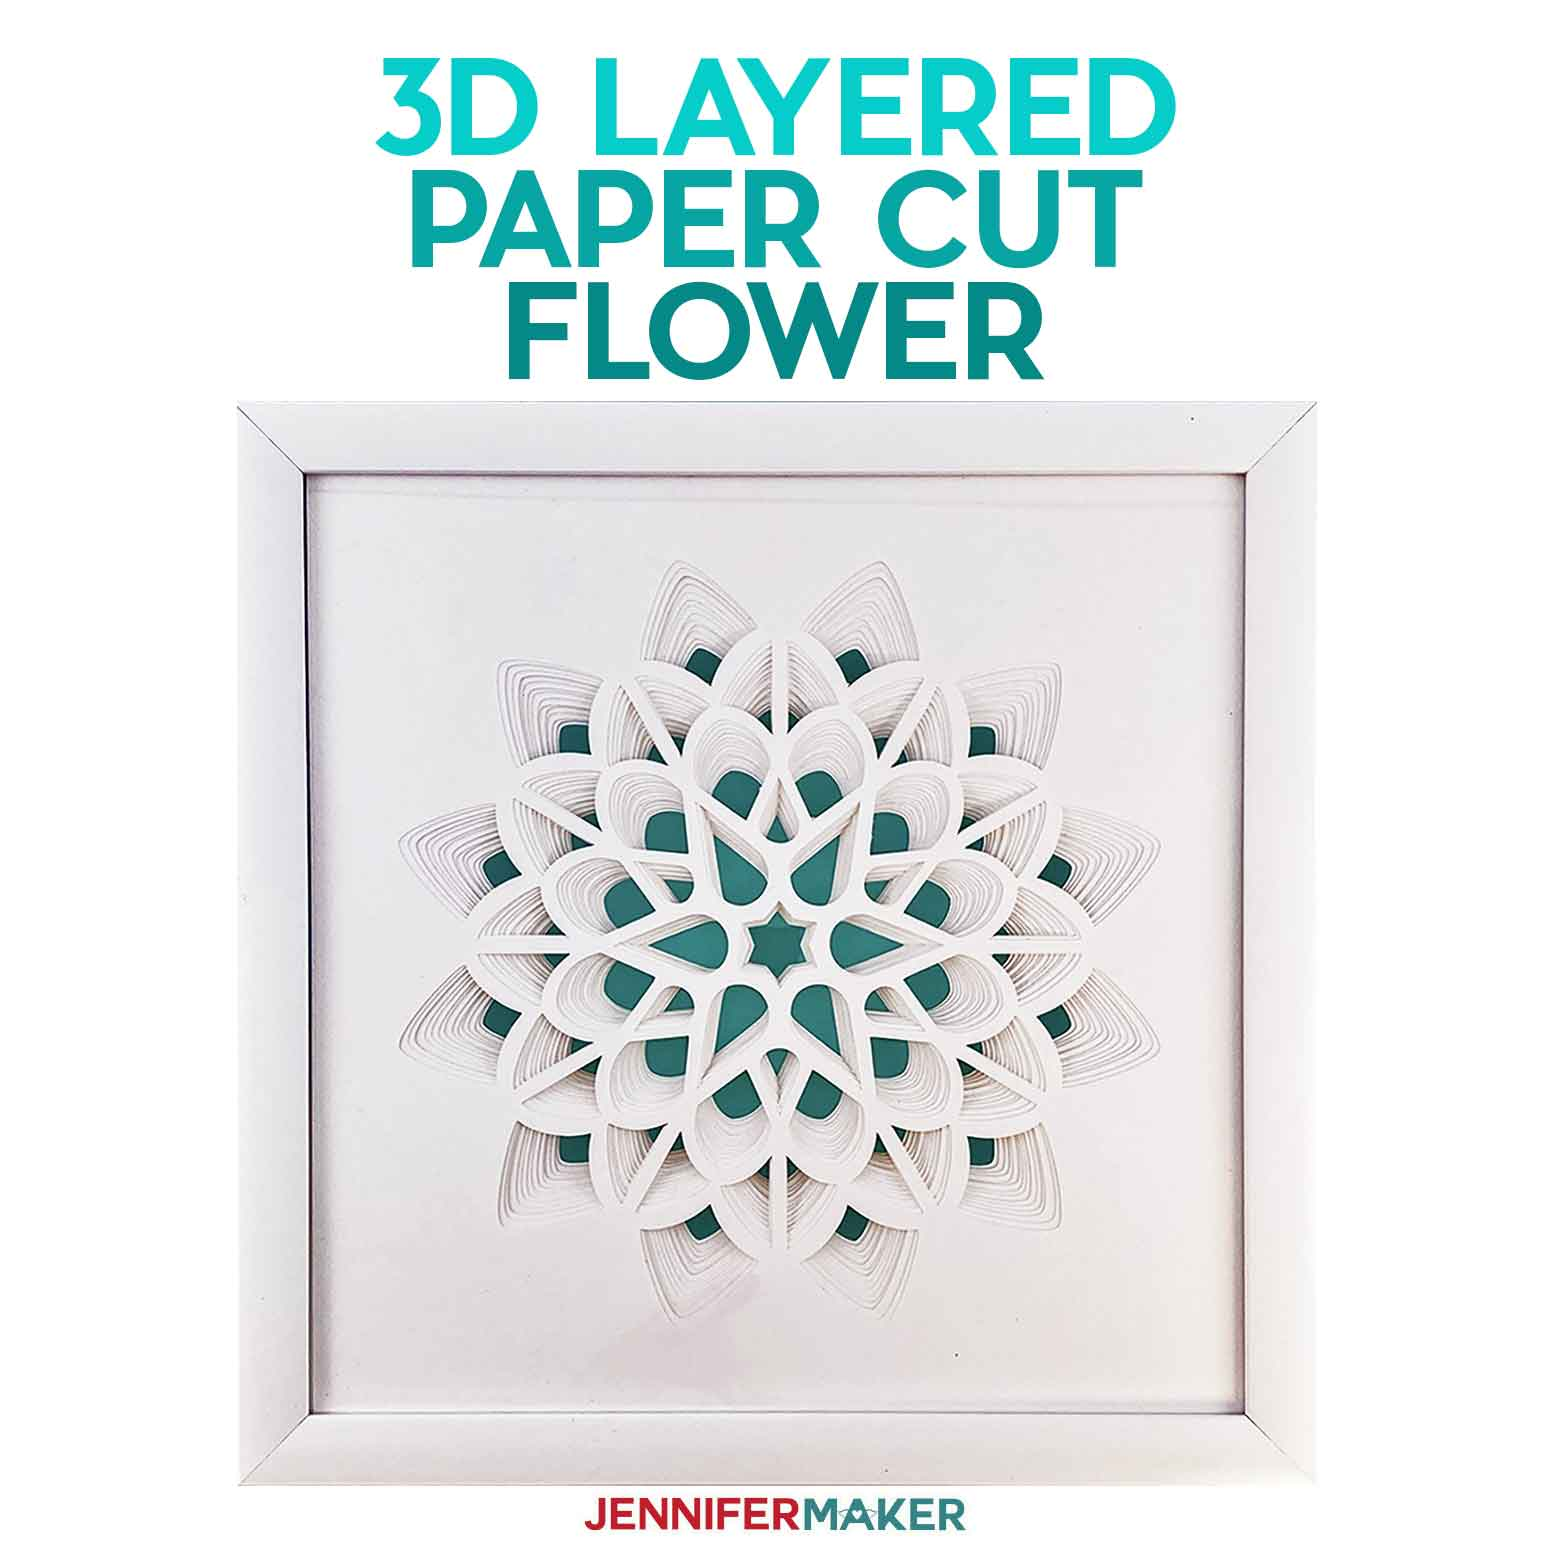 3D Layered Paper Cut Art: The Flower